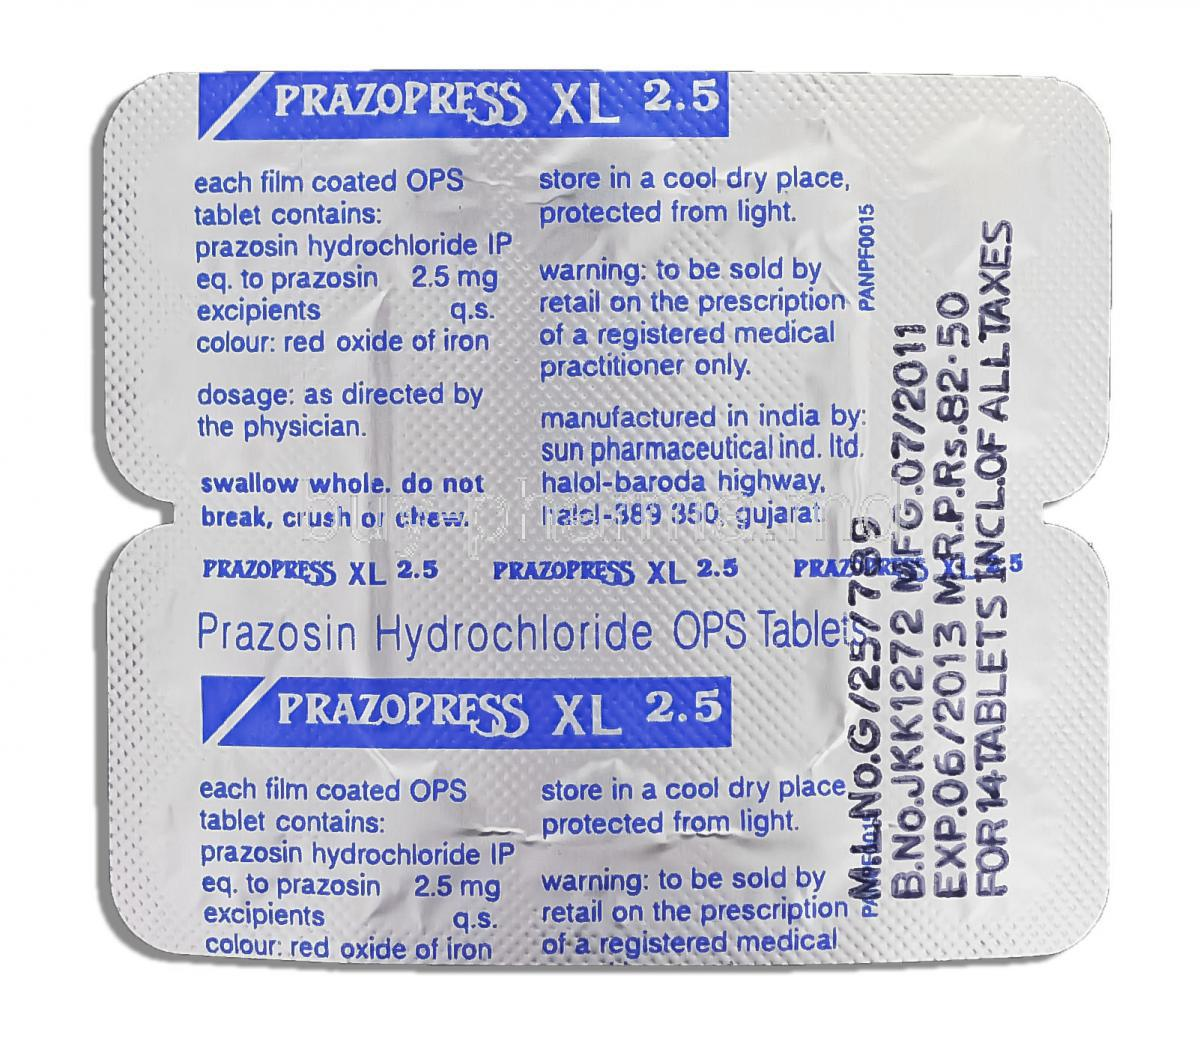 Prazopress 1 mg unit